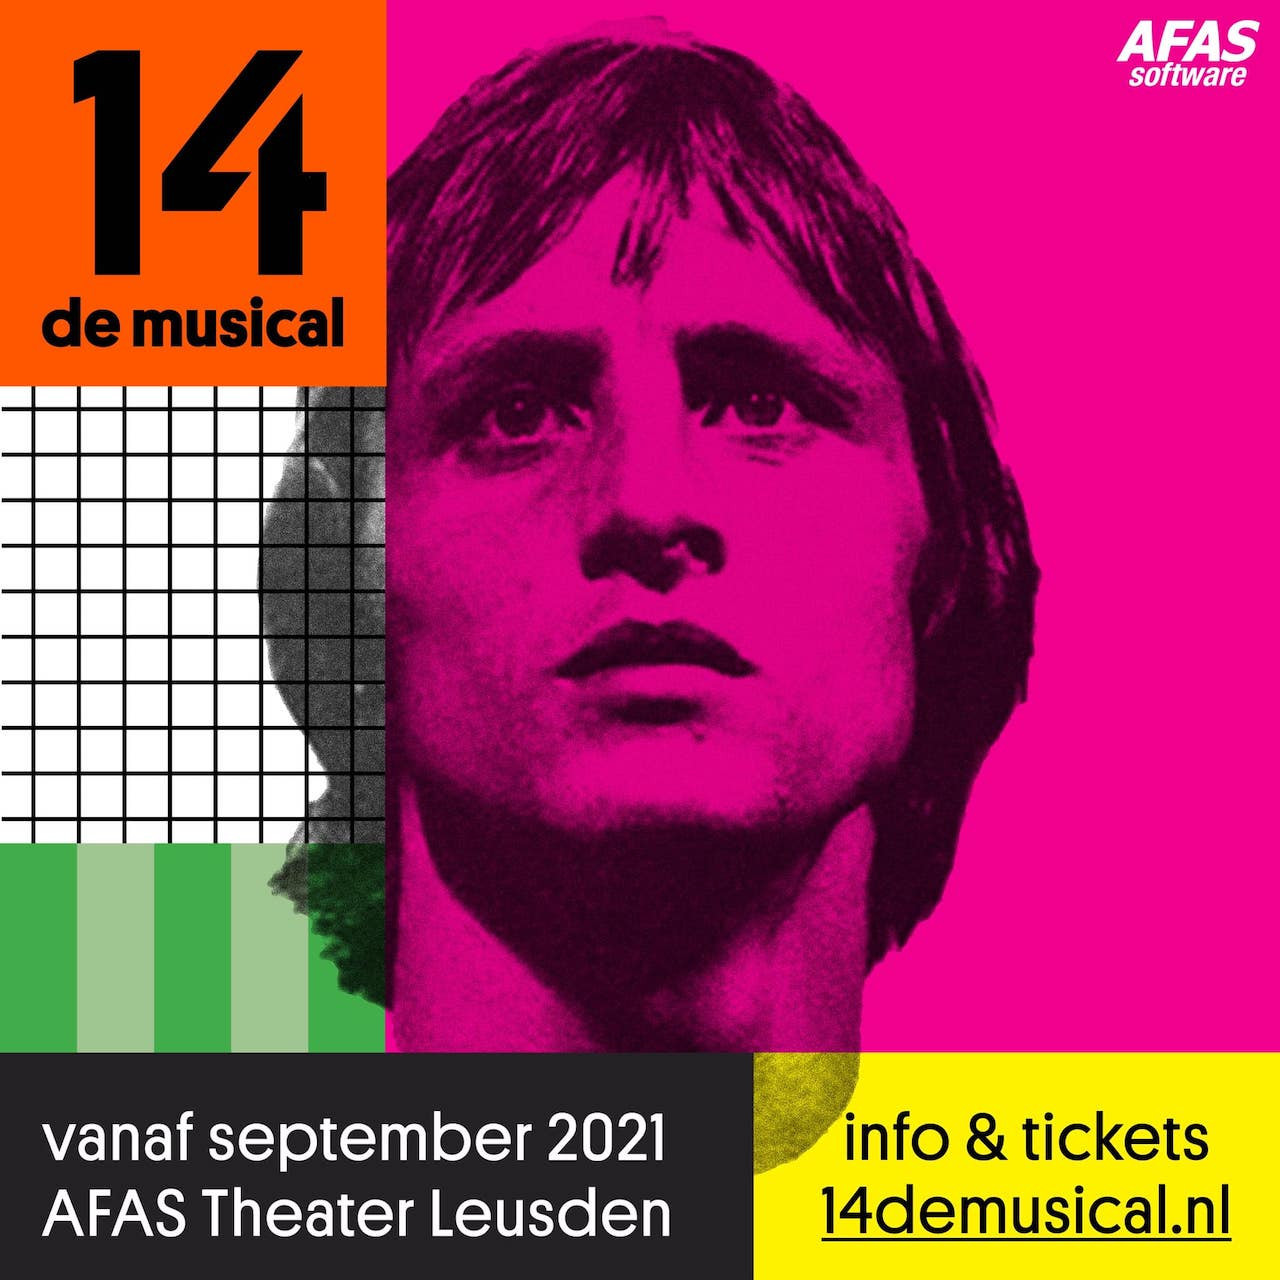 Johan Cruyff's life is to be celebrated in a new theatre production, 14 de musical ©Out Of Office Productions